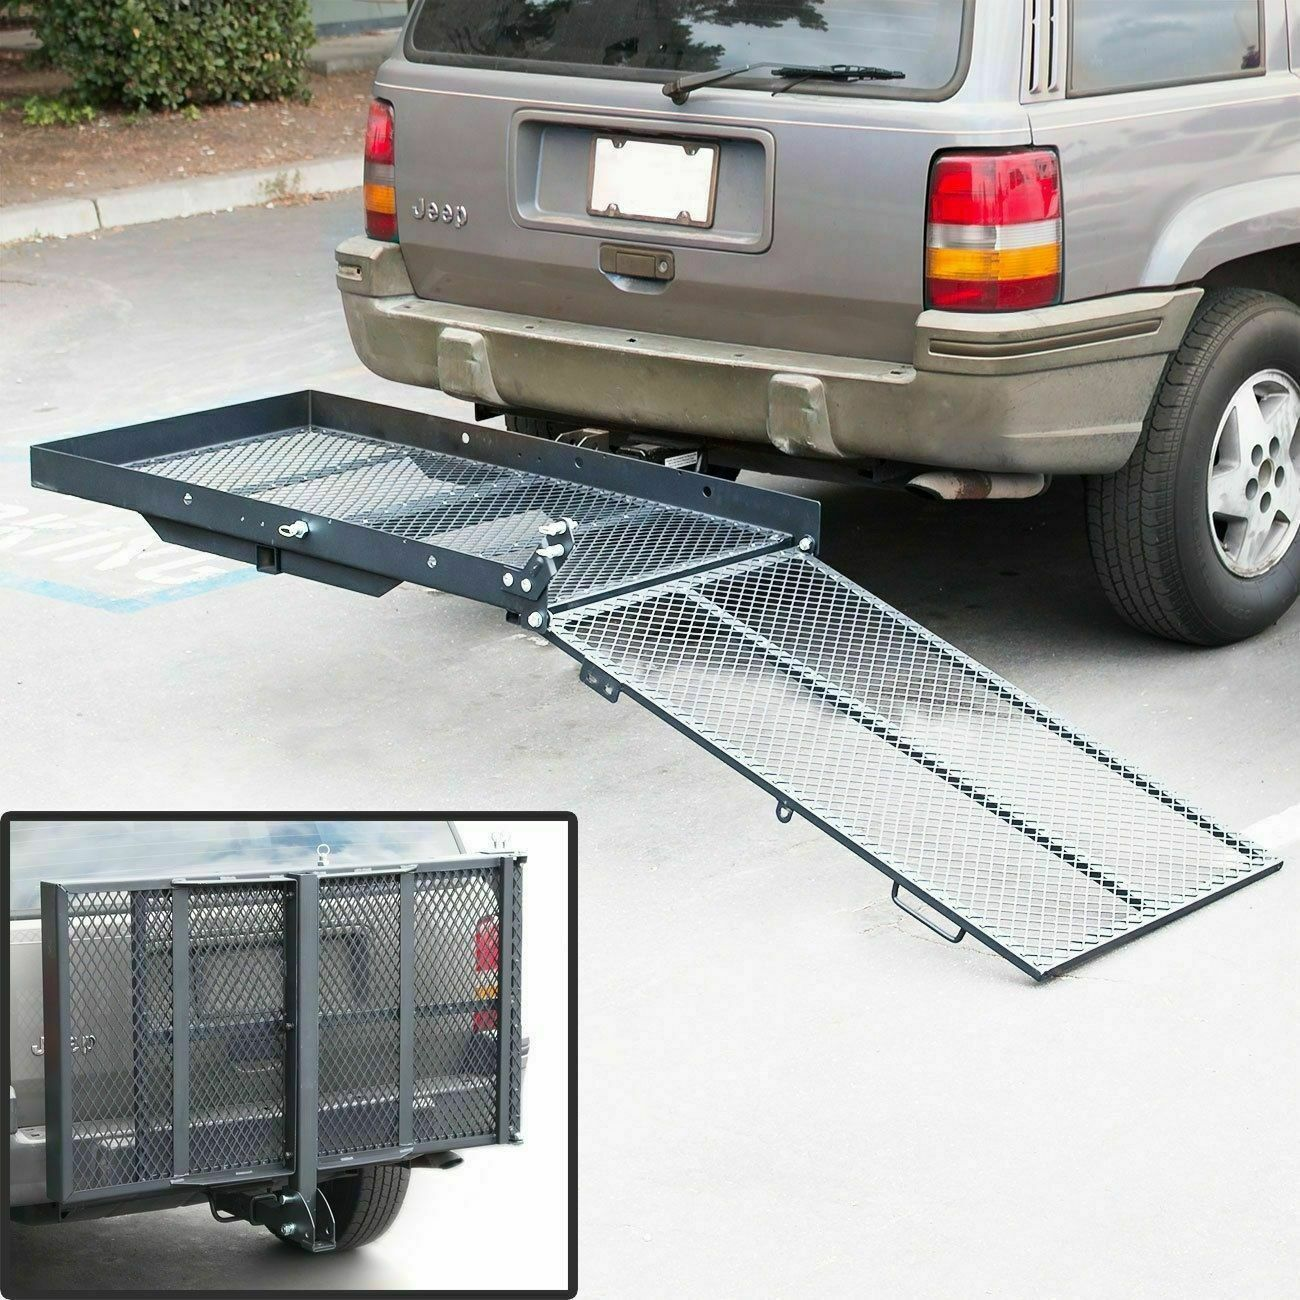 Trailer Hitch Folding Wheelchair Scooter Carrier Disability Rack w/ Loading Ramp